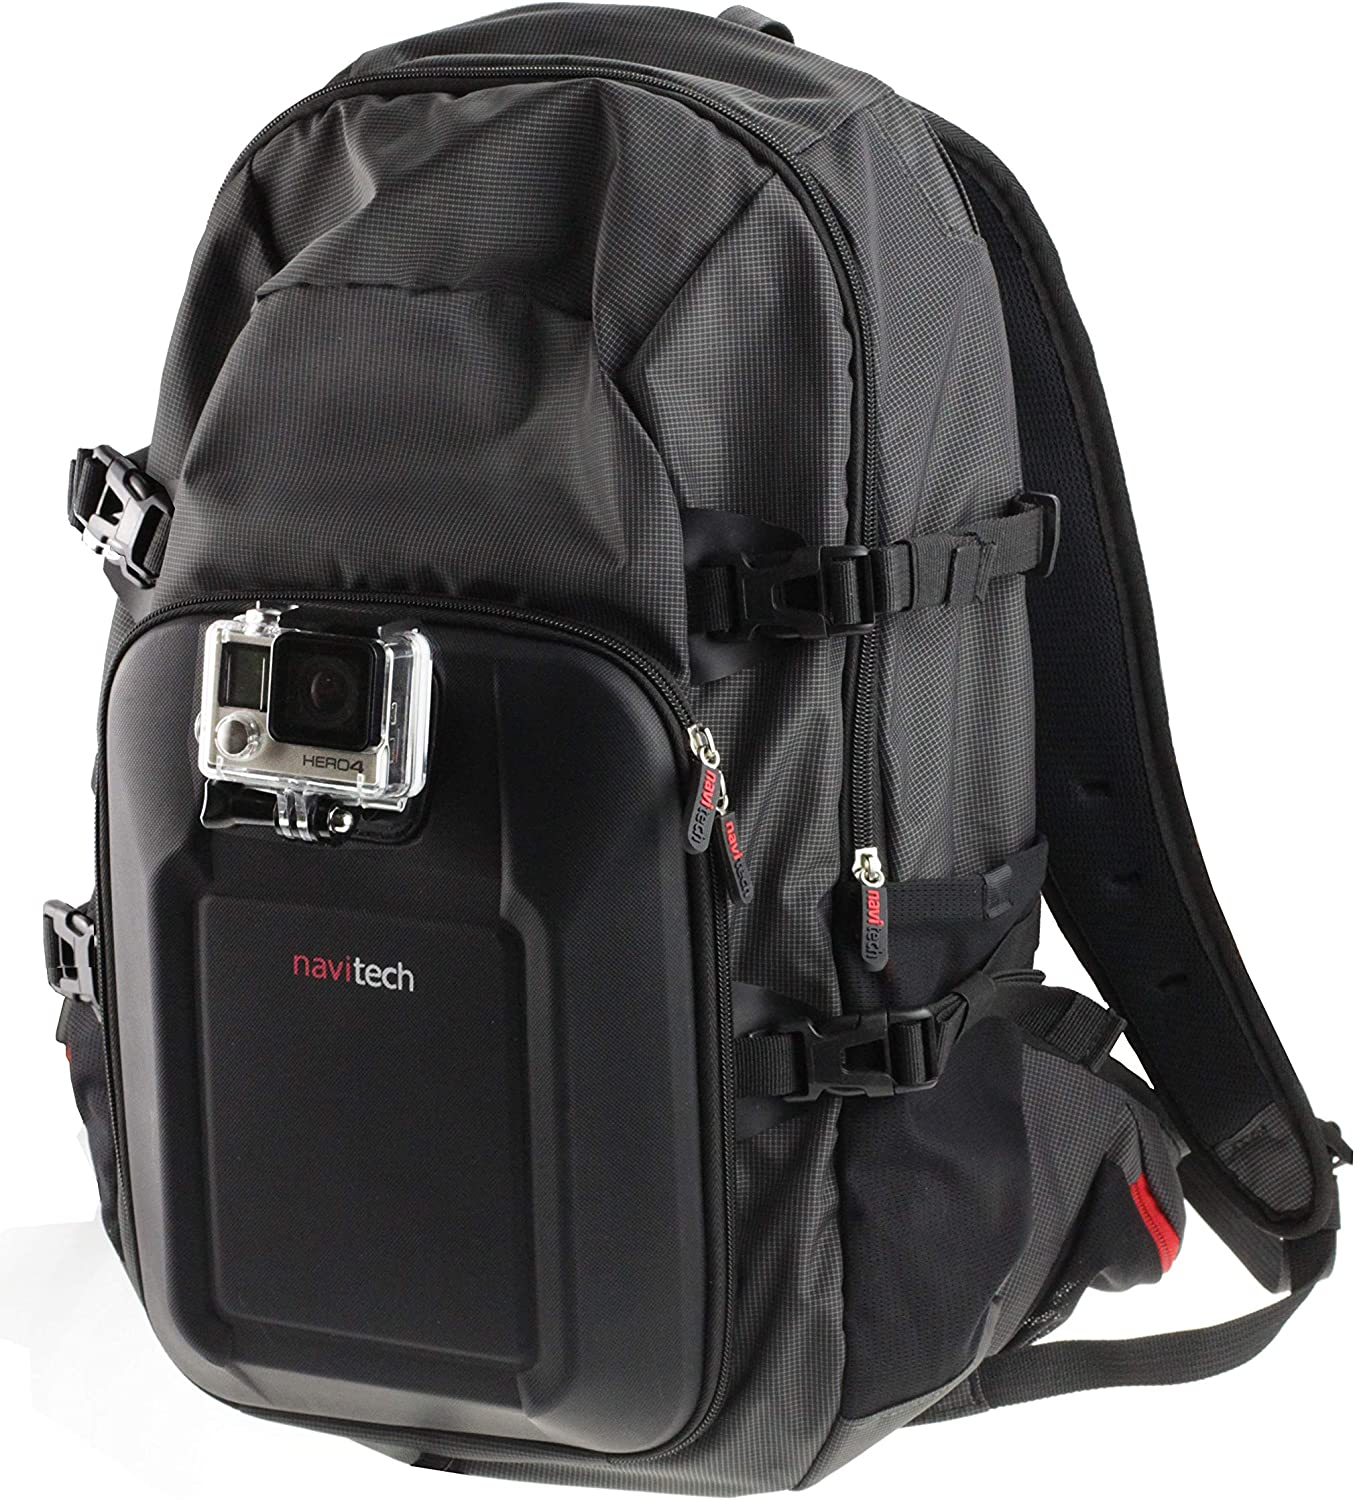 Navitech Action Camera Backpack with Integrated Chest Strap Compatible with The Midland XTC-100 XTC-260VP3 Action Camera XTC-400 XTC-300 XTC-200